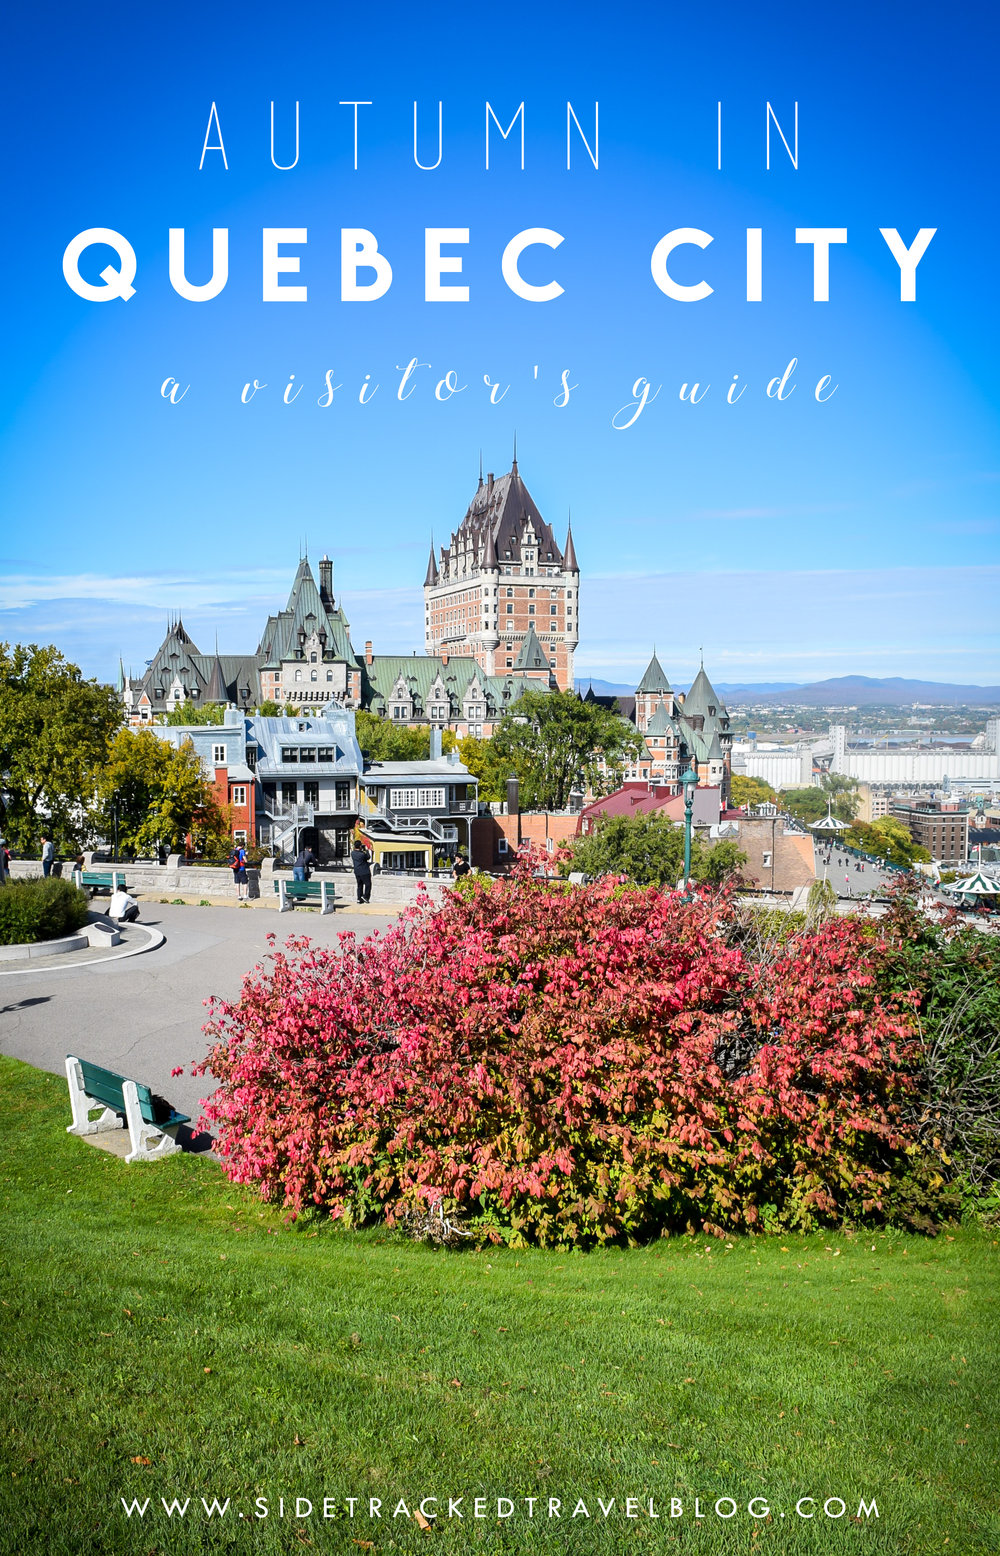 Charming architecture, fascinating history, a vibrant café and restaurant scene, and an atmosphere reminiscent of Europe - Québec City stands out as one of Canada's most charismatic cities, especially during autumn. Be sure to read this article highlighting things you should see, delicious places to eat, and other useful things to know before you go.